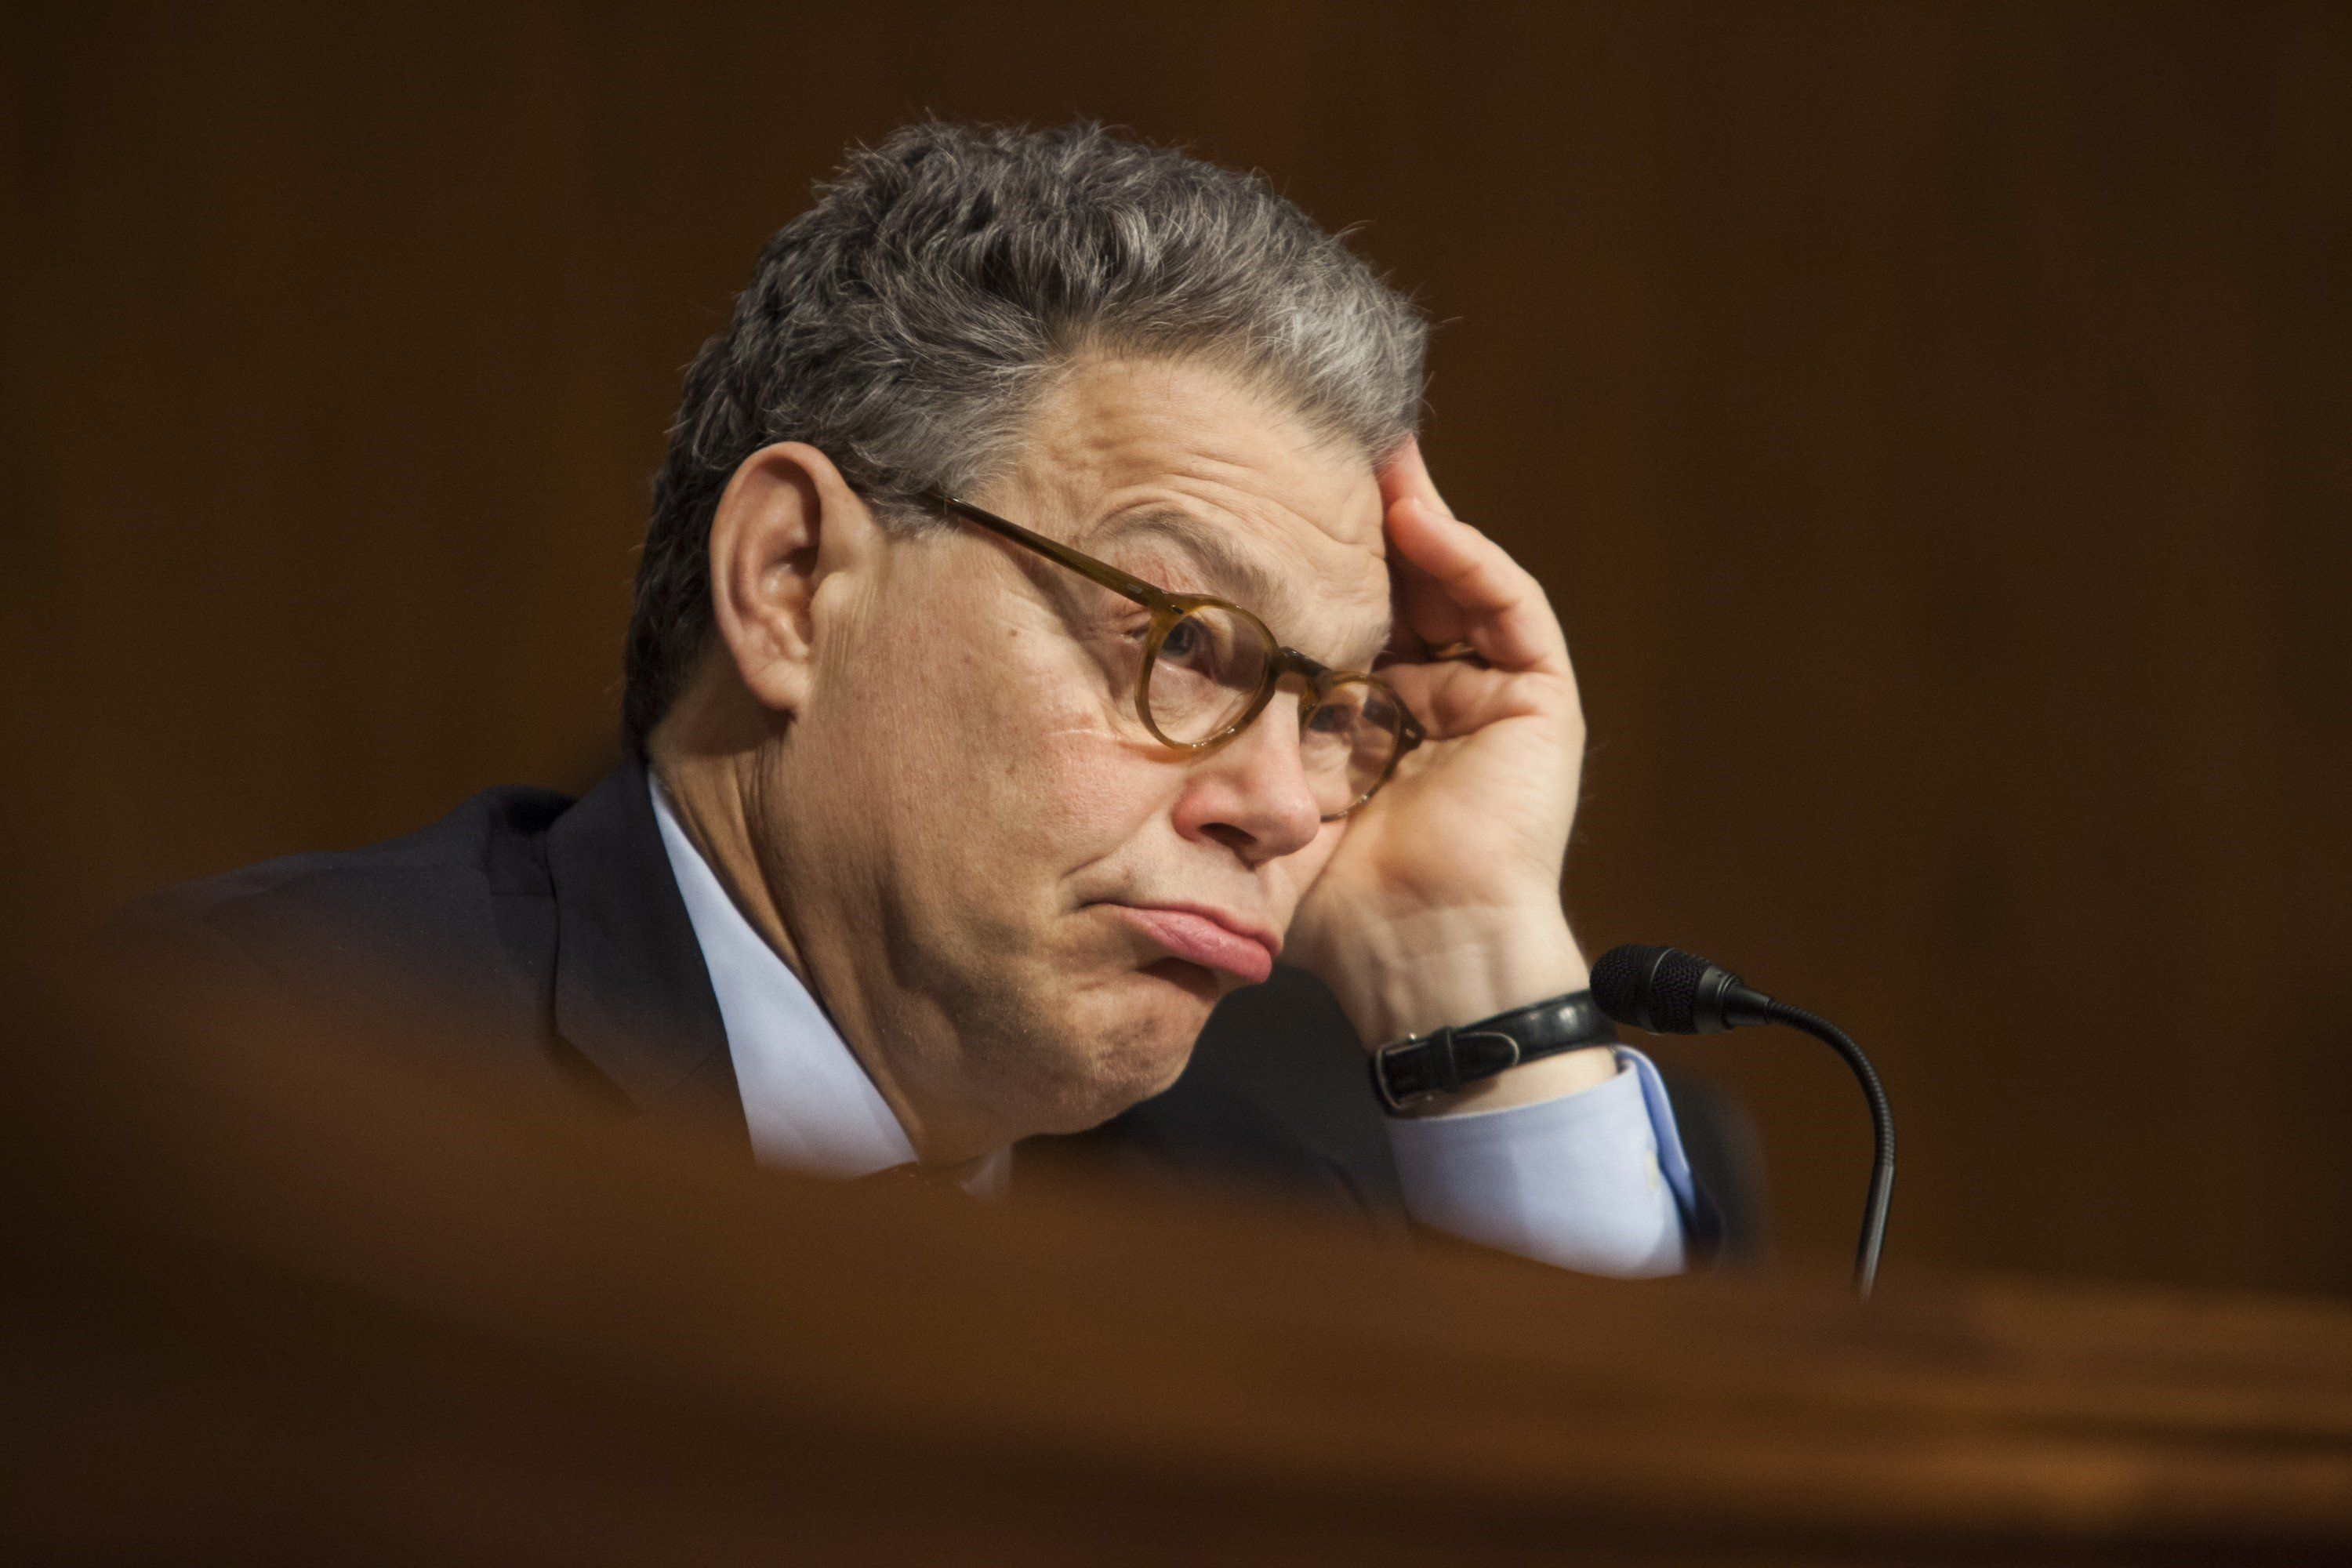 Sen. Al Franken (D-Minn.), pictured, and other Democrats are open to fast-tracking tribal energy development.